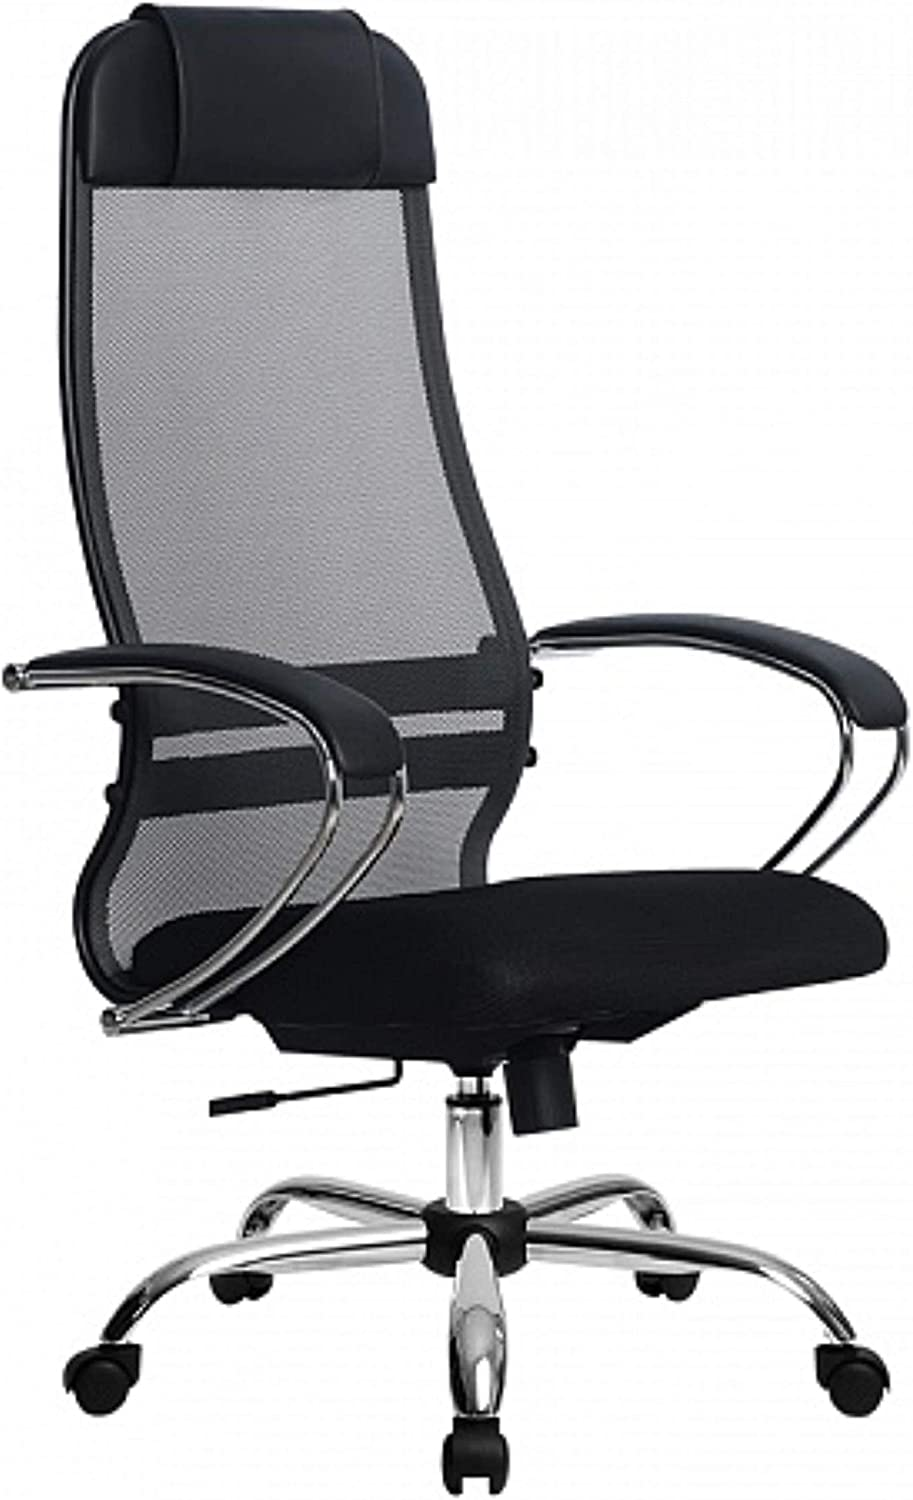 High Back Desk Chair with Adjustable Lumbar Support /& Thick Seat Cushion Samurai Chair Executive Office Chair Black Mesh Office Chair,Heavy Duty Metal Base,300lb